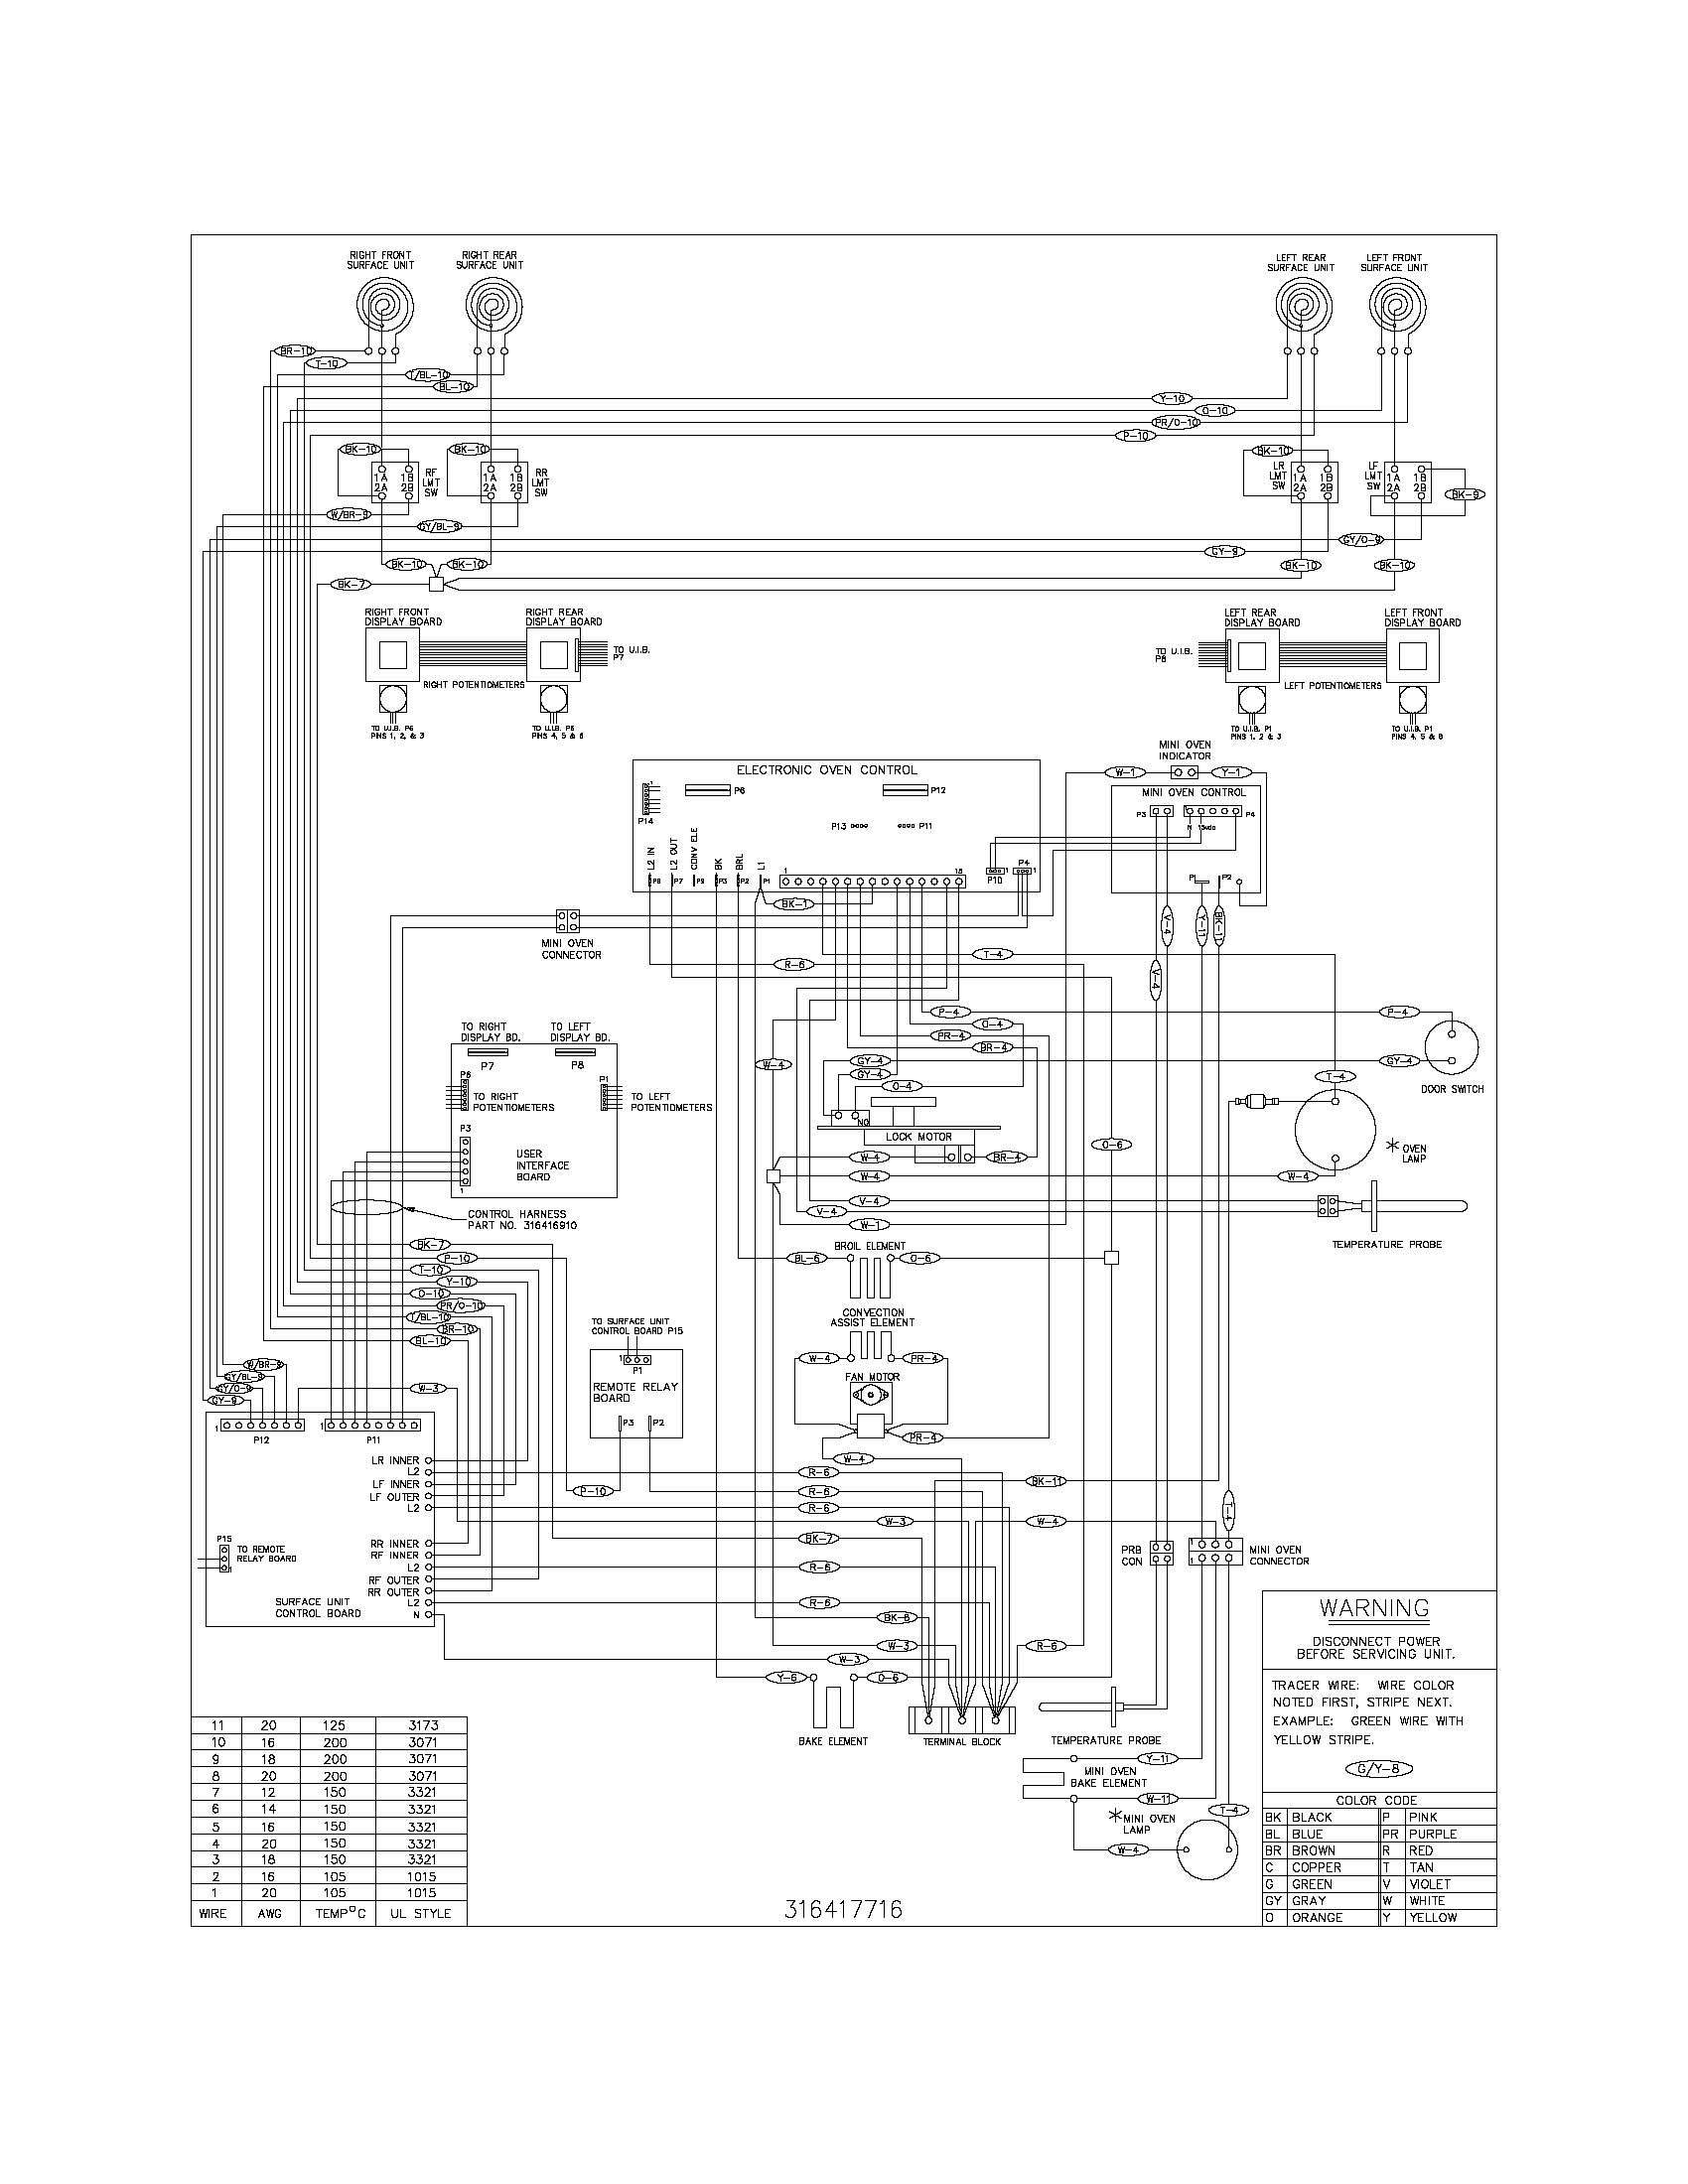 Jenn Air Refrigerator Wiring Diagram moreover Dimplex electric fire Obisidan OBS20 Series A likewise Jenn Air Wiring Diagrams together with Ventless Gas Fireplace Wiring Diagrams furthermore Appliance. on wiring diagram for duraflame electric fire place